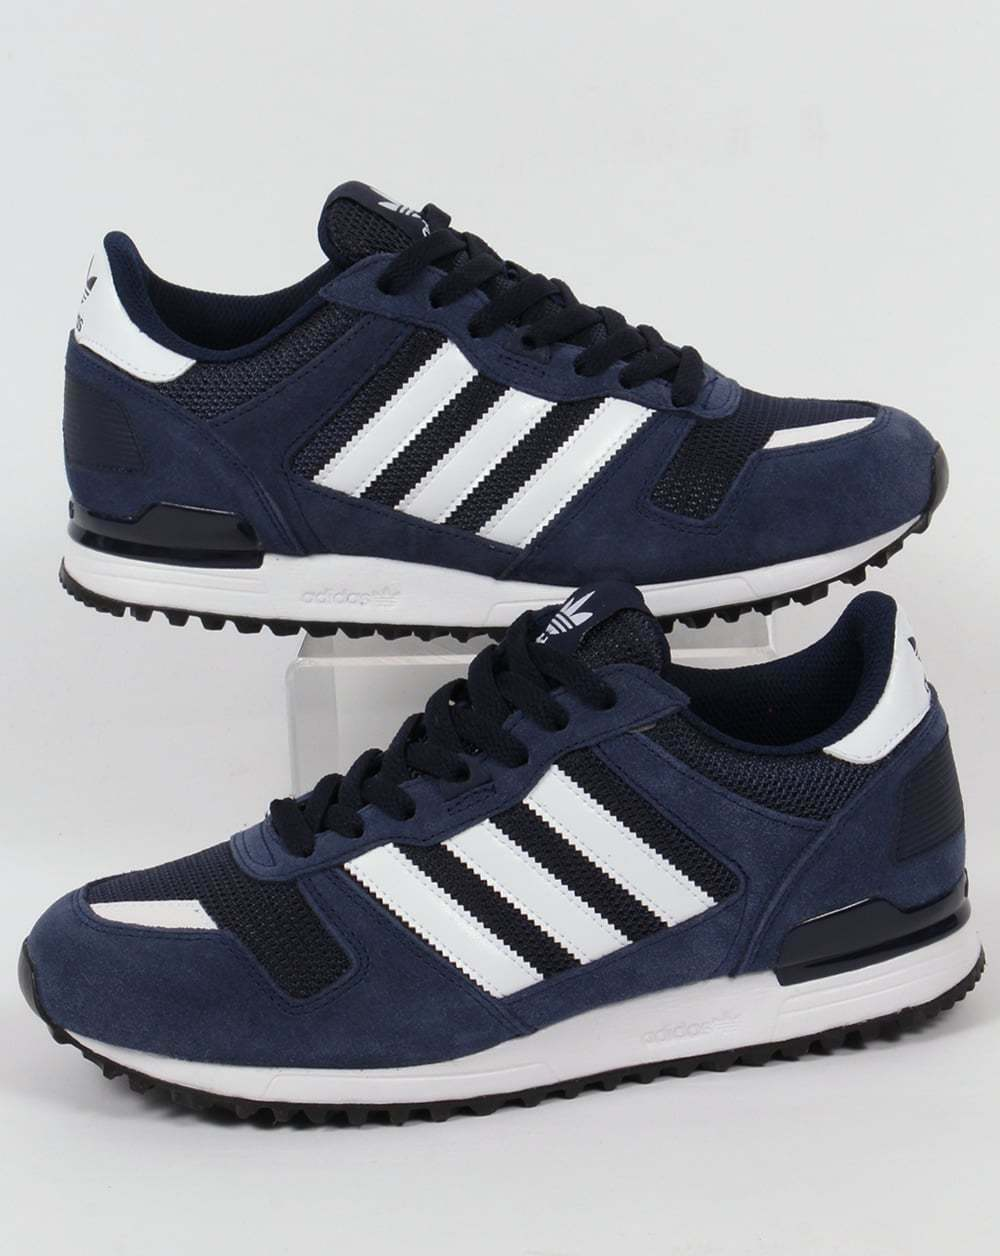 sale online stable quality uk store Adidas Originals - Adidas ZX 700 Trainers in Navy & White ...